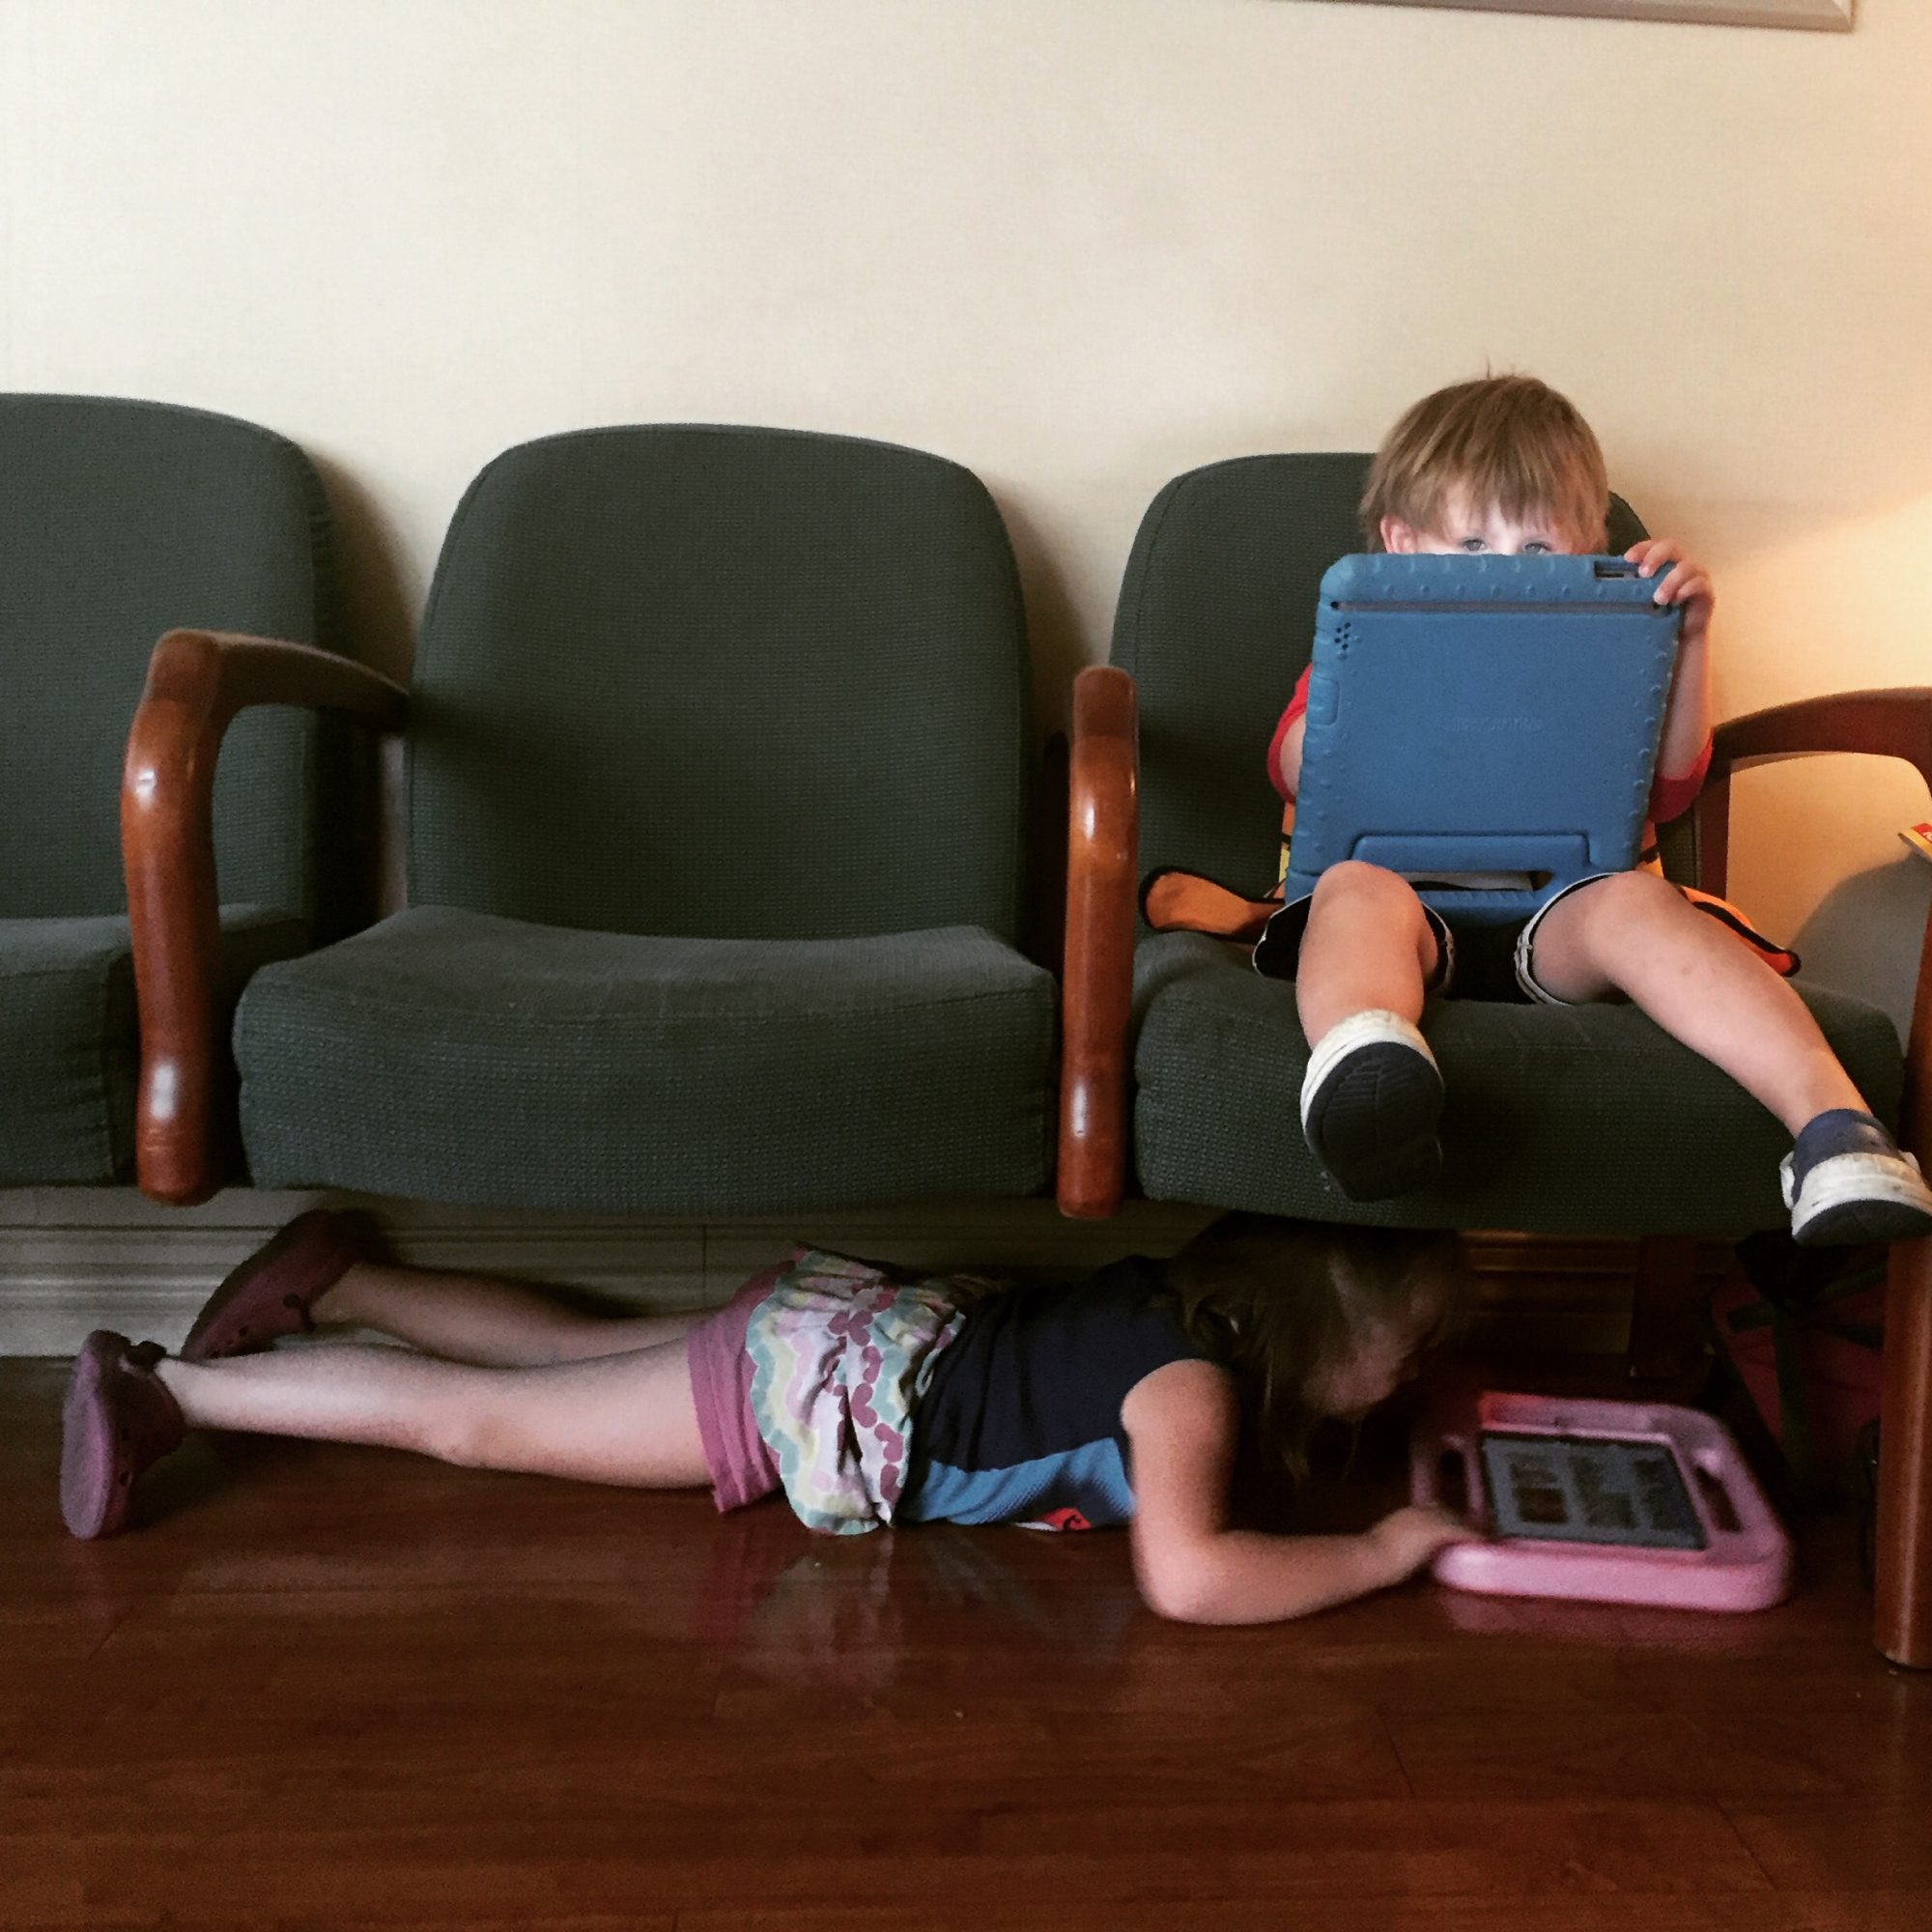 mack and moxie with their iPads in the waiting room